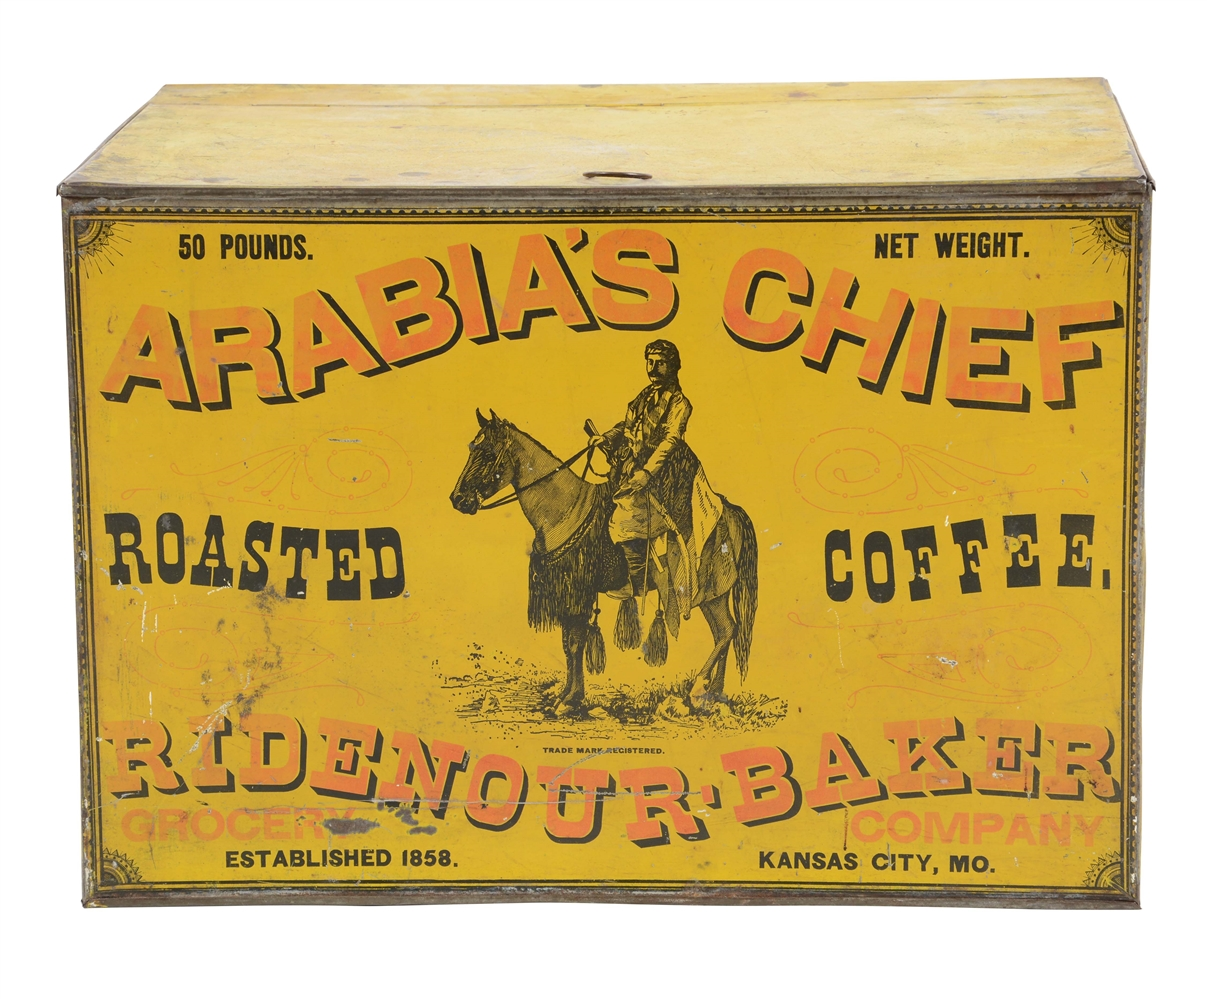 Arabia's Chief Coffee Bin, Ridenour Bakery, Kansas City, MO. Ca. 1900